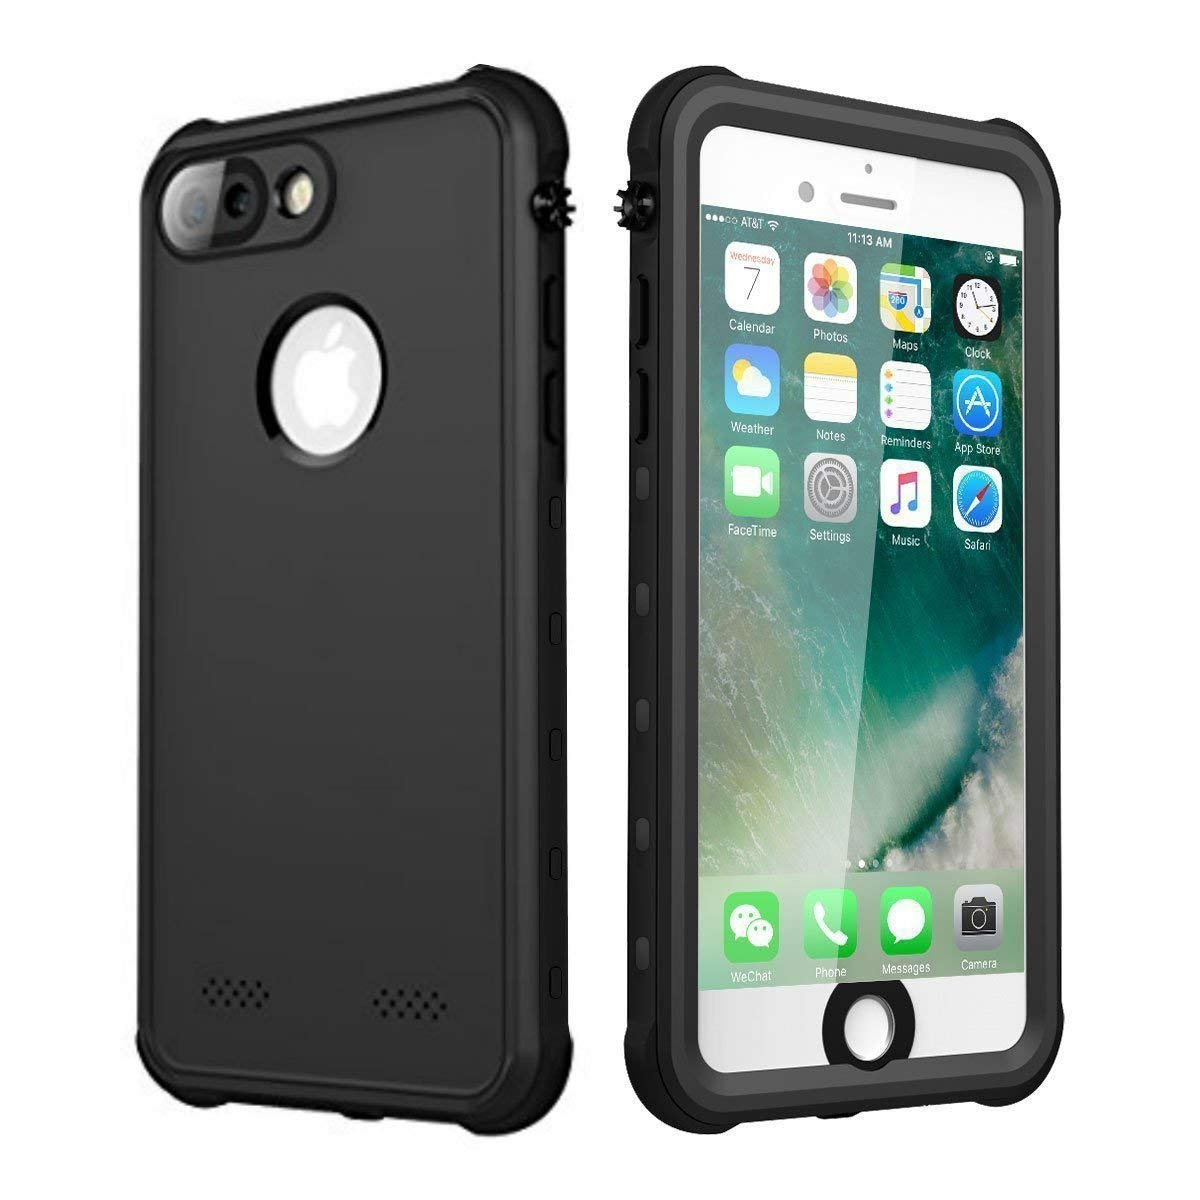 ChuWill Funda Impermeable iPhone 7 Plus, Carcasa iPhone 8 Plus ...